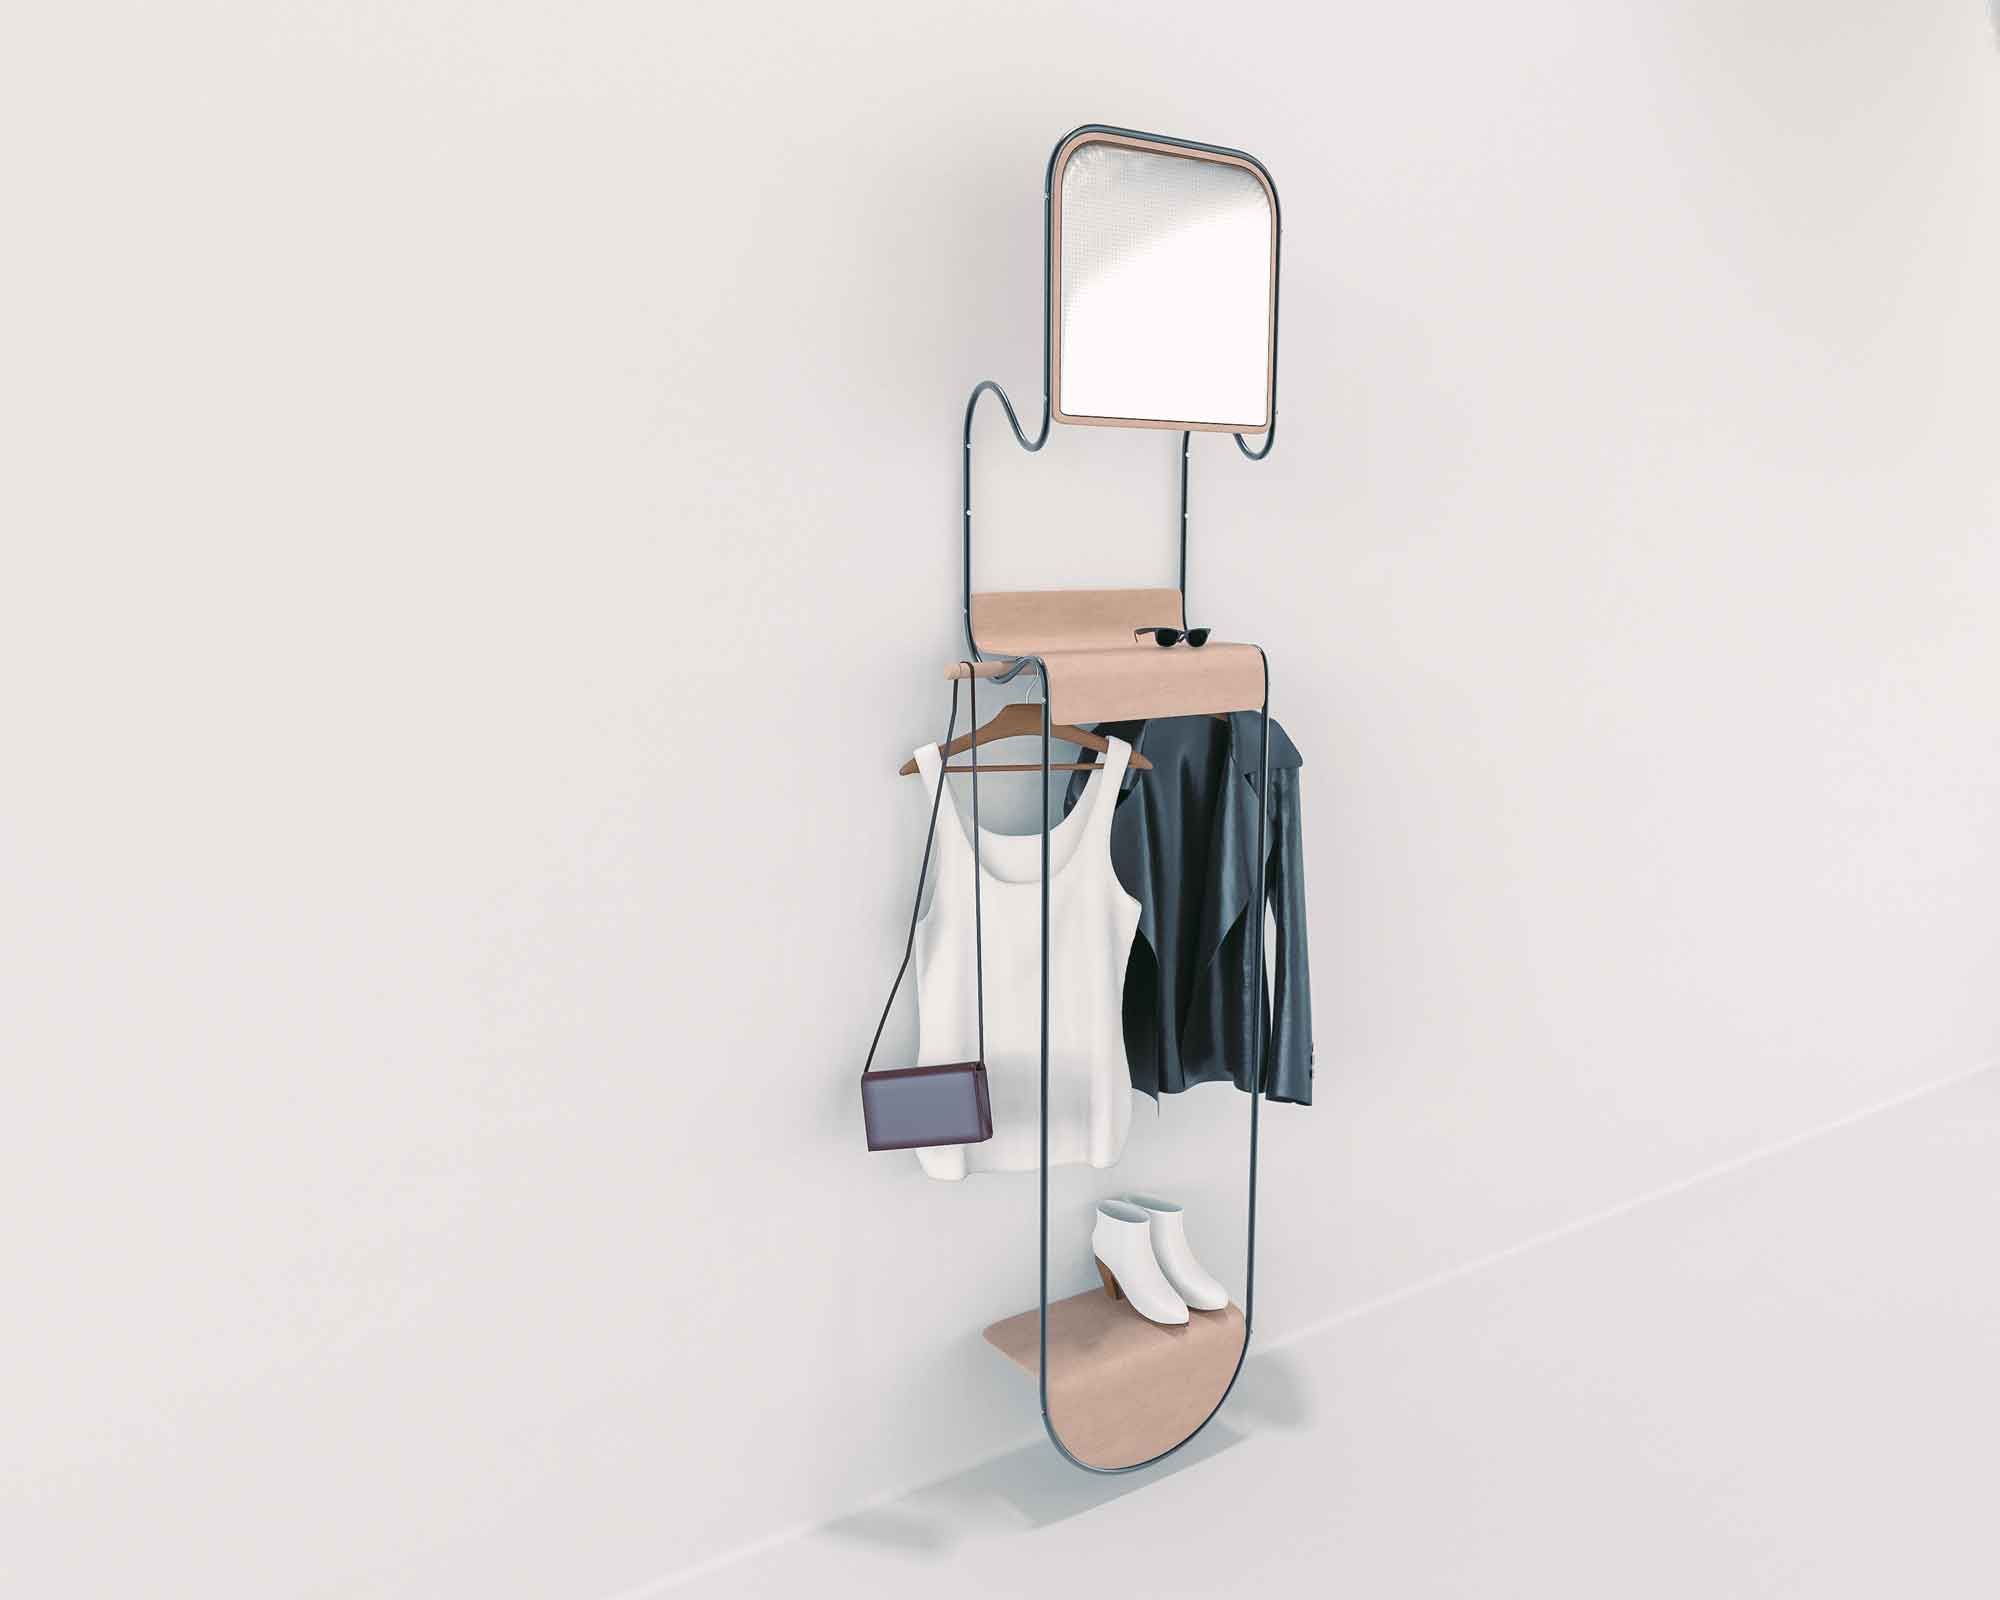 Kempt is designed around a CNC bent pipe fitted with two bent wood shelves. A hanger rod is inserted beneath the accessory shelf, which can also be installed underneath the mirror.